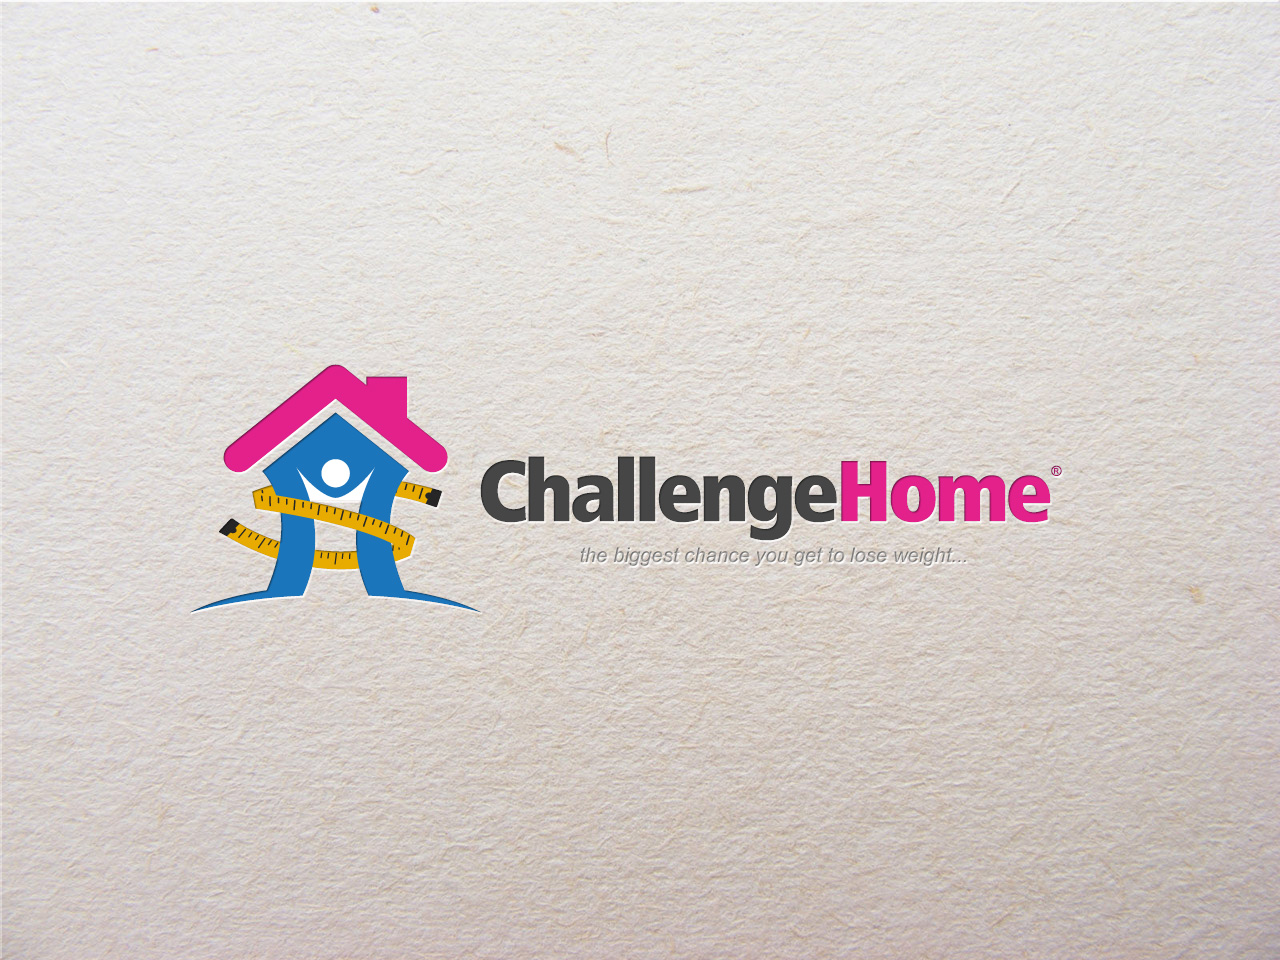 Logo Design by jpbituin - Entry No. 44 in the Logo Design Contest Unique Logo Design Wanted for Challenge Home.